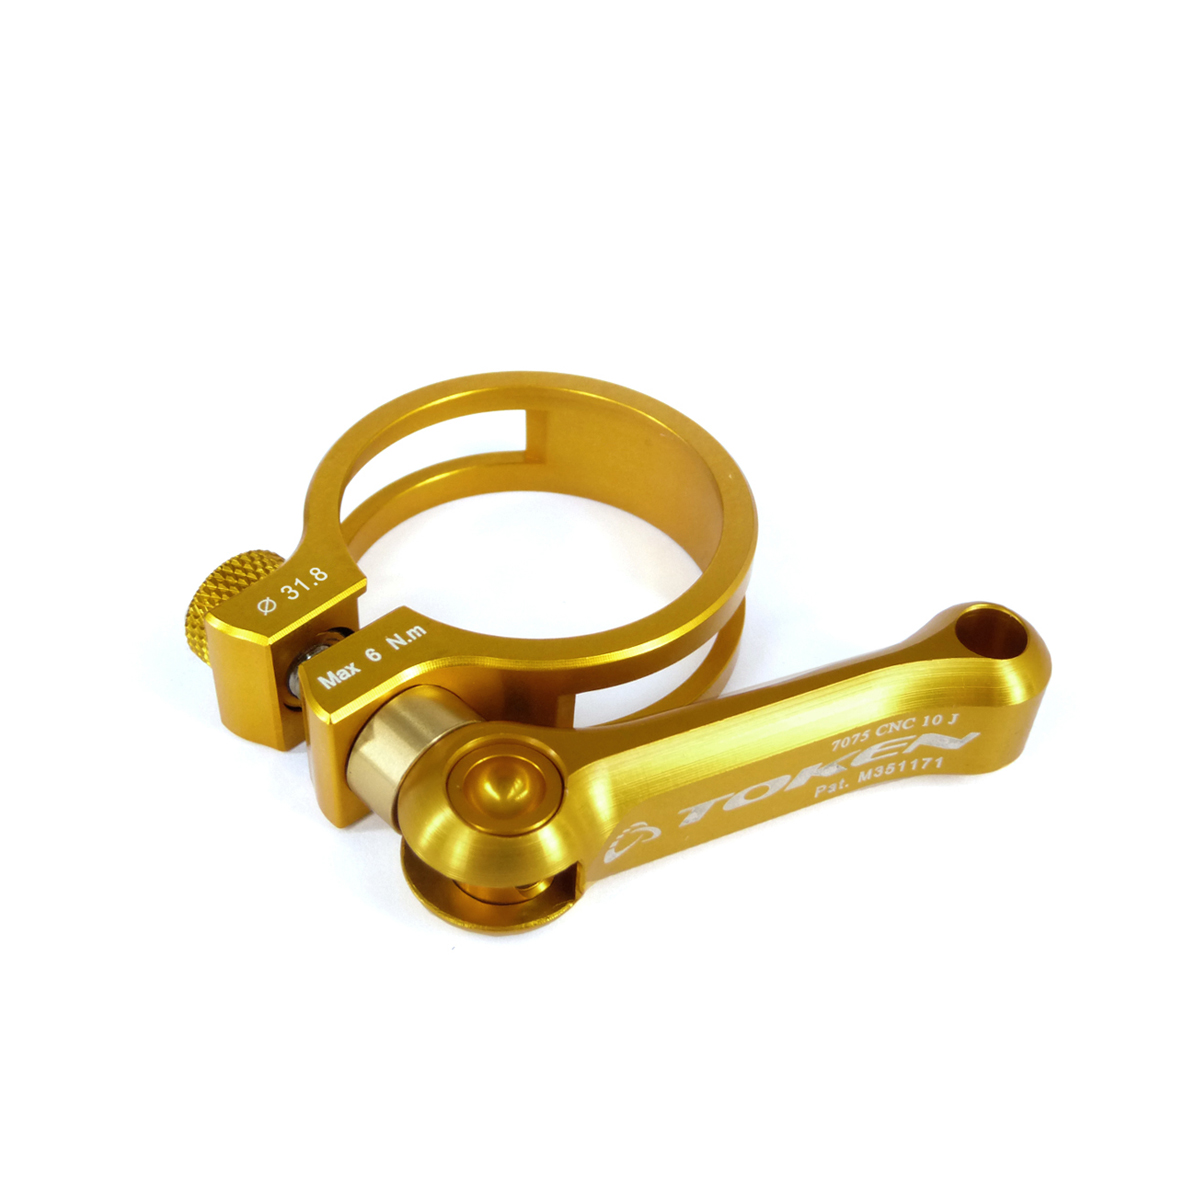 Collier de selle Token blocage rapide 31,8 mm Or